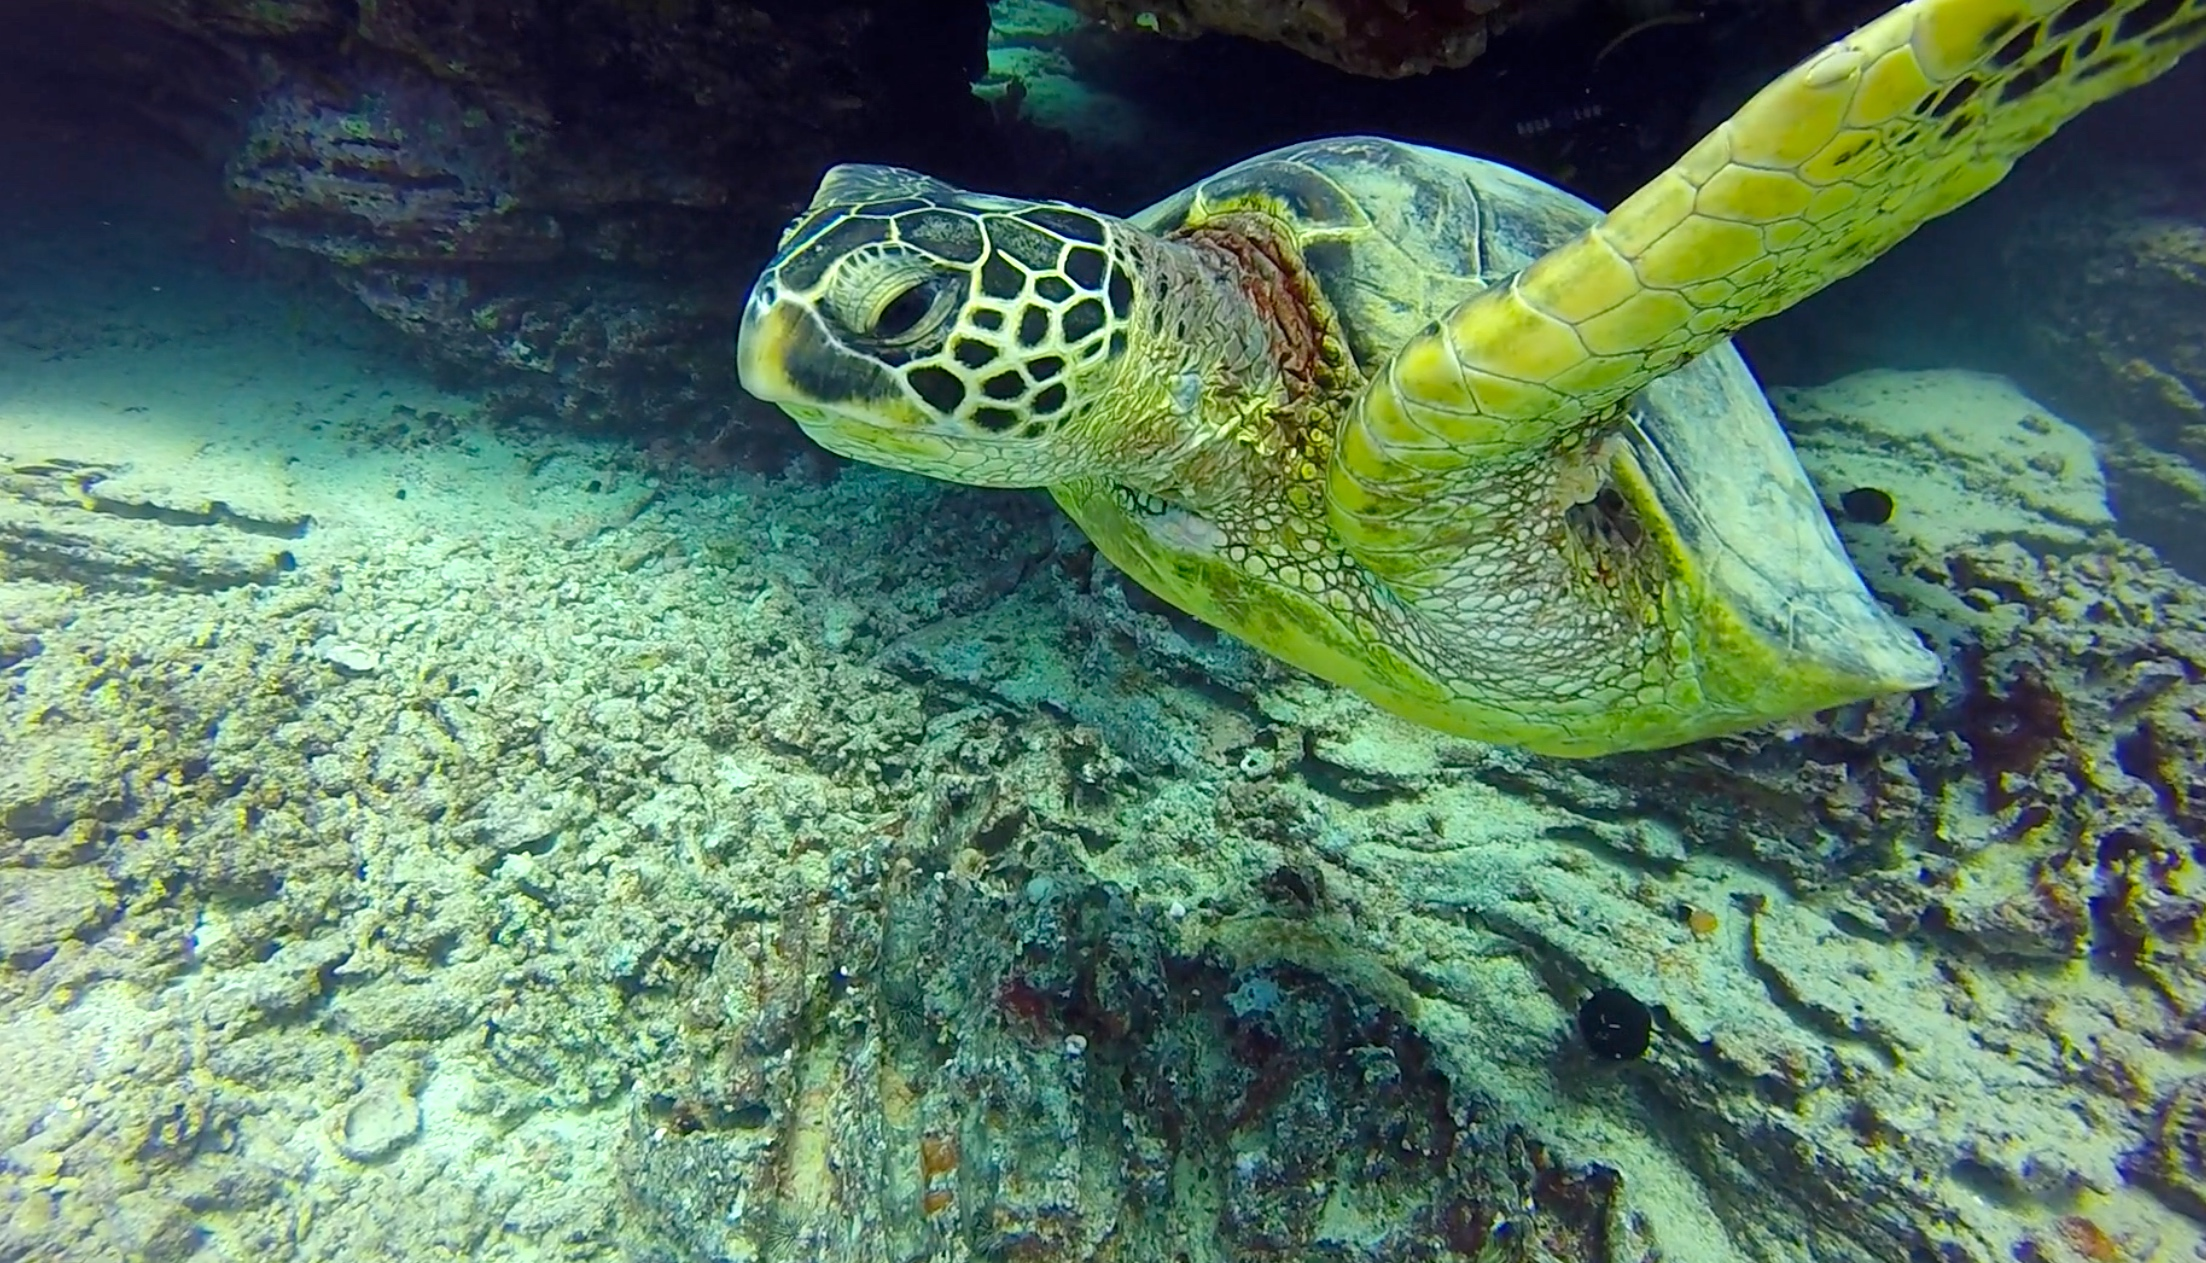 Sea Turtle at Fantasy Reef, Oahu's best dive site